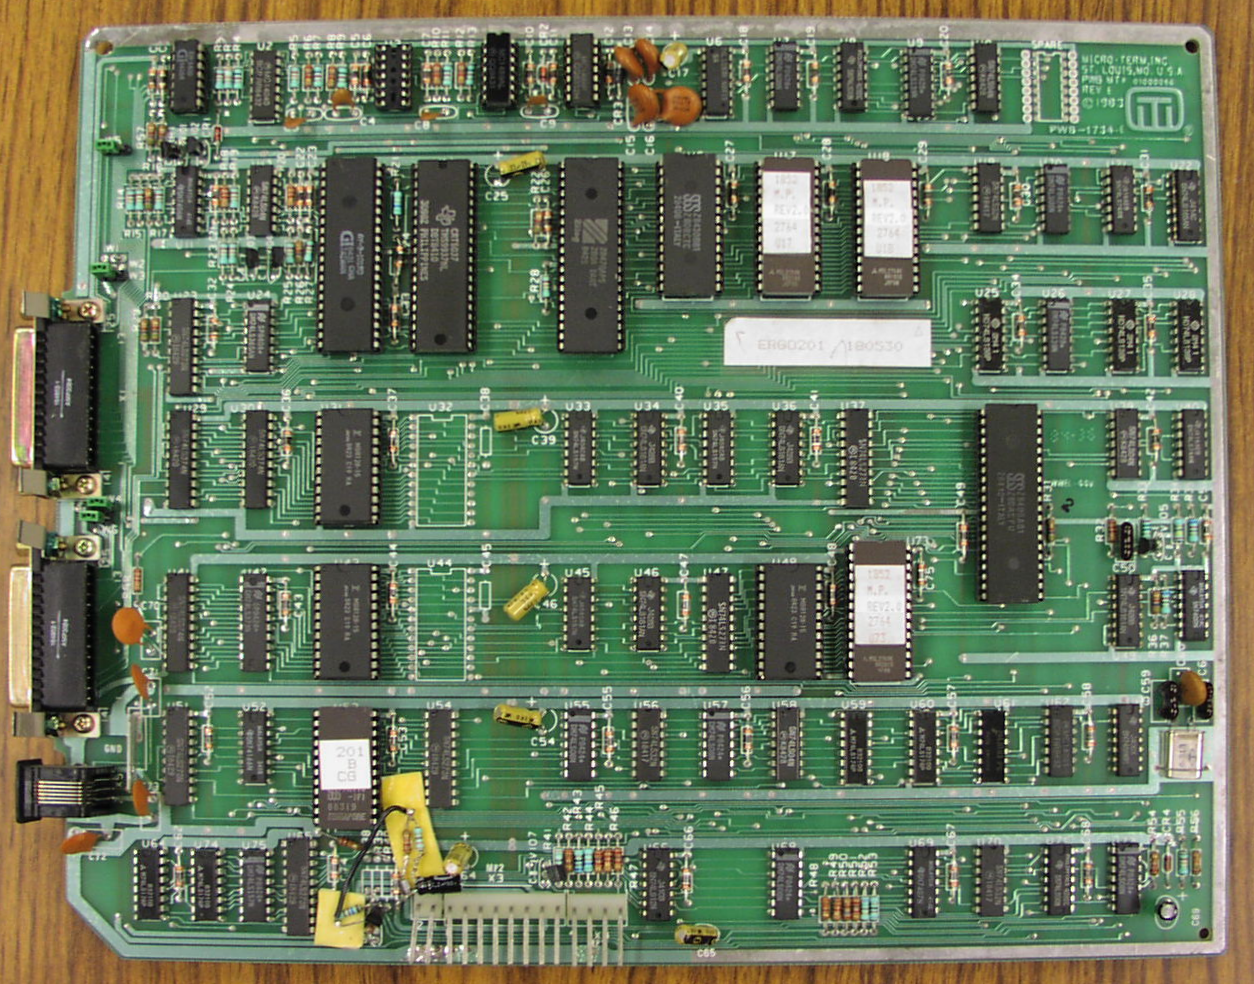 File:Computer-photo-Micro Term Inc-(Micro Term-ERGO- - Motherboard PNG